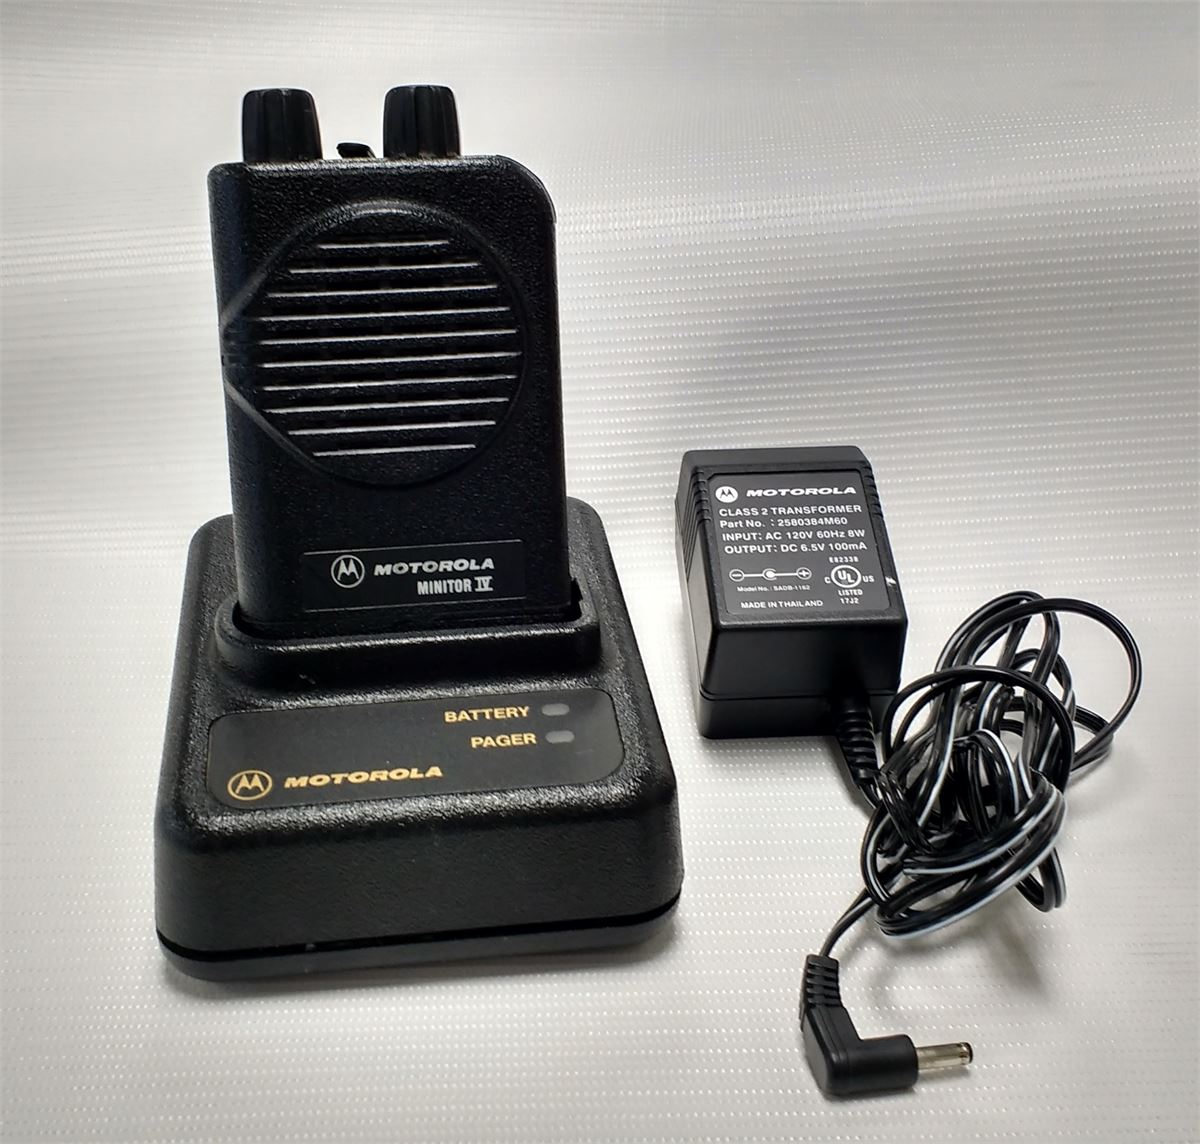 MOTOROLA MINITOR IV EMS PAGER & CHARGER SETS Online Government ...